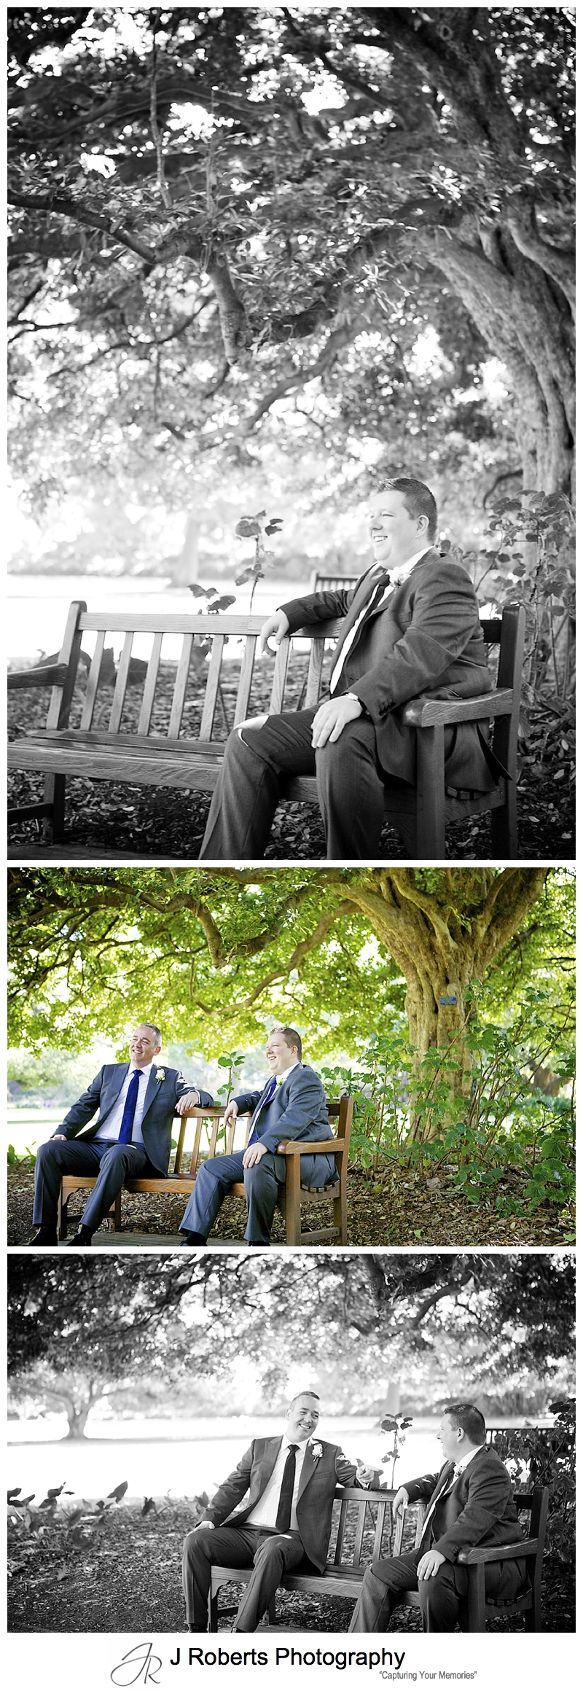 Groom and best man on a seat under the trees at royal botanic gardens sydney - sydney wedding photography